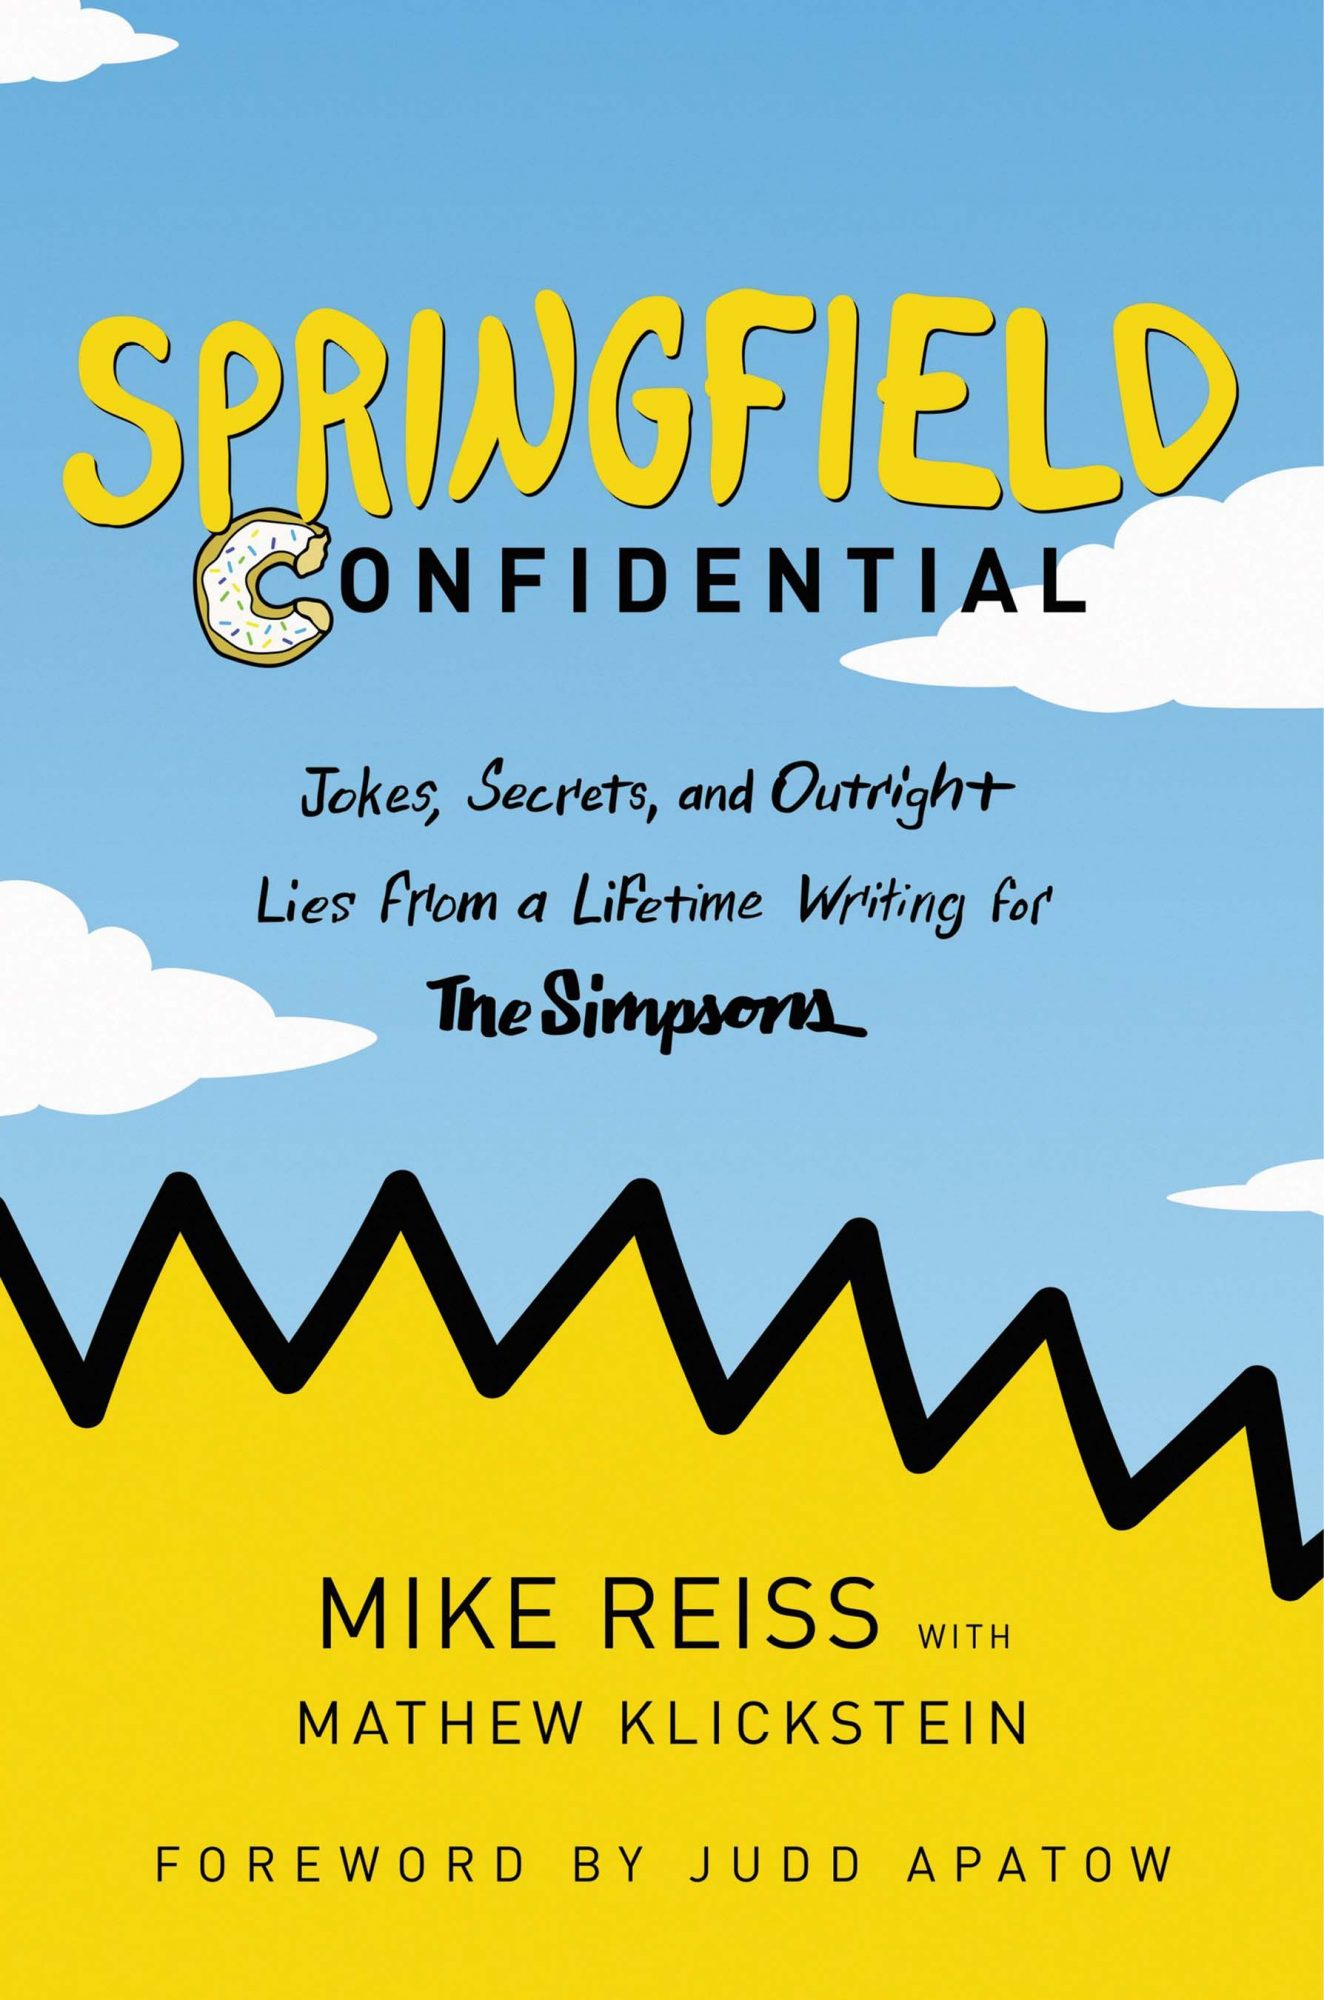 Springfield Confidential by Mike Reiss